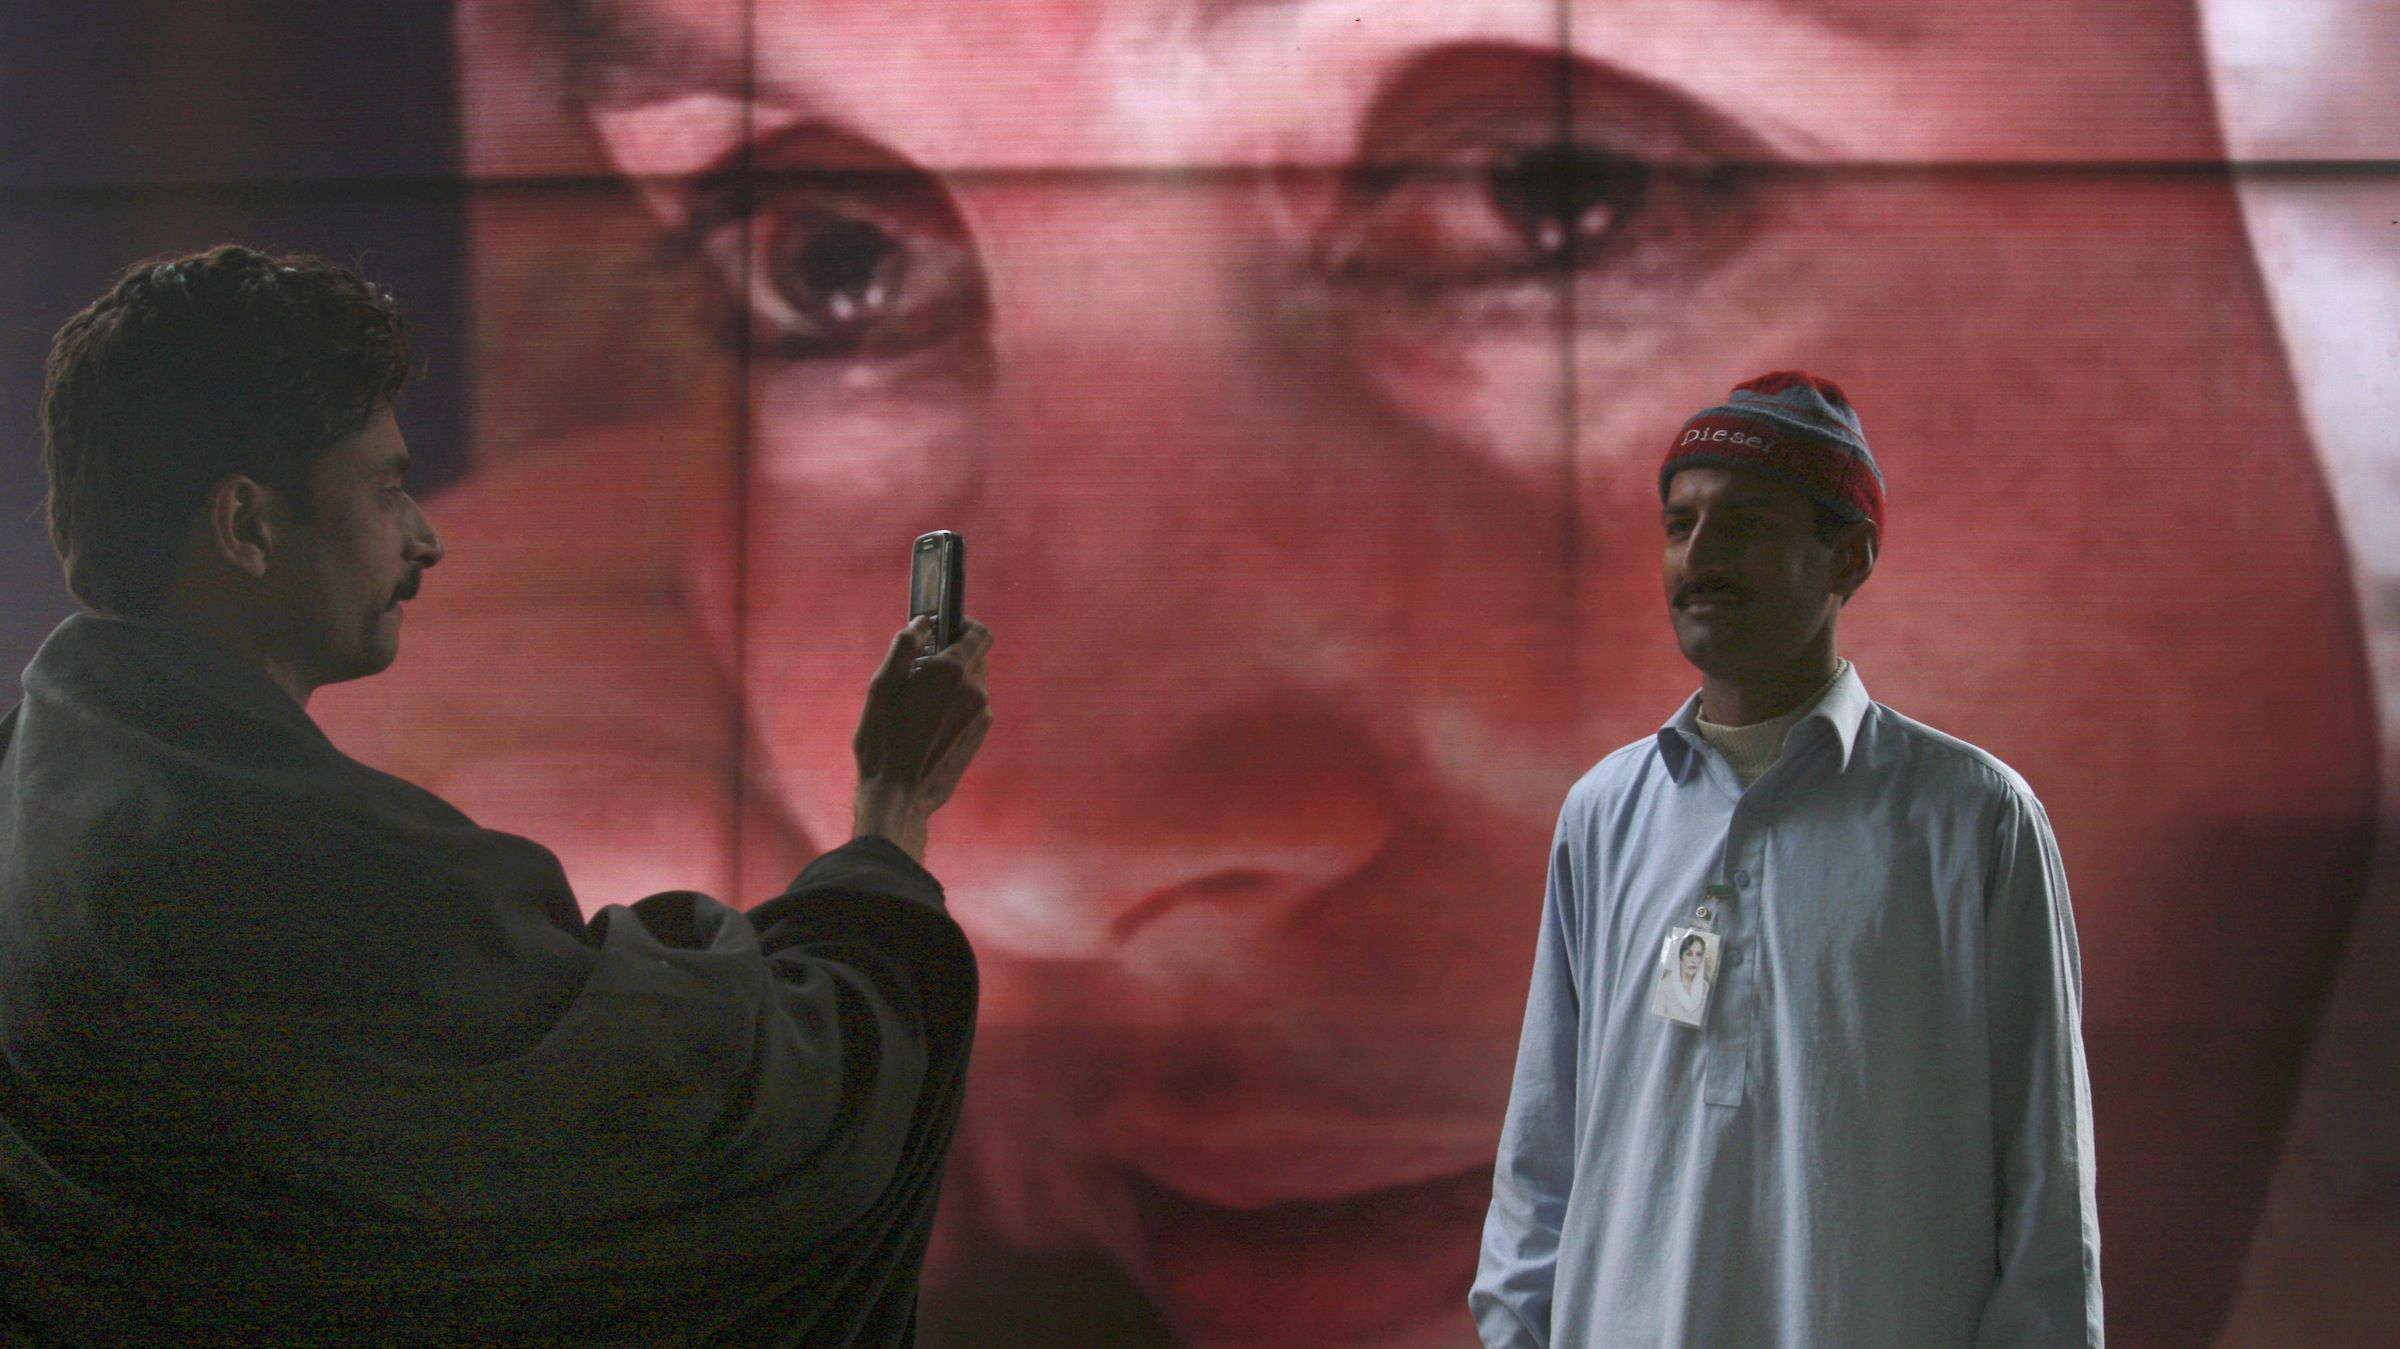 A man uses his mobile phone to take picture of his colleague in front of the poster of Pakistan's slain former Prime Minister Benazir Bhutto at her mausoleum, Saturday, Dec. 27, 2008 in Garhi Khuda Bakhsh near Larkana, Pakistan. Up to 200,000 Pakistanis gathered at the mausoleum of Bhutto on the first anniversary of her assassination, some of them walking hundreds of miles (kilometers) to get there. (AP Photo/Shakil Adil)